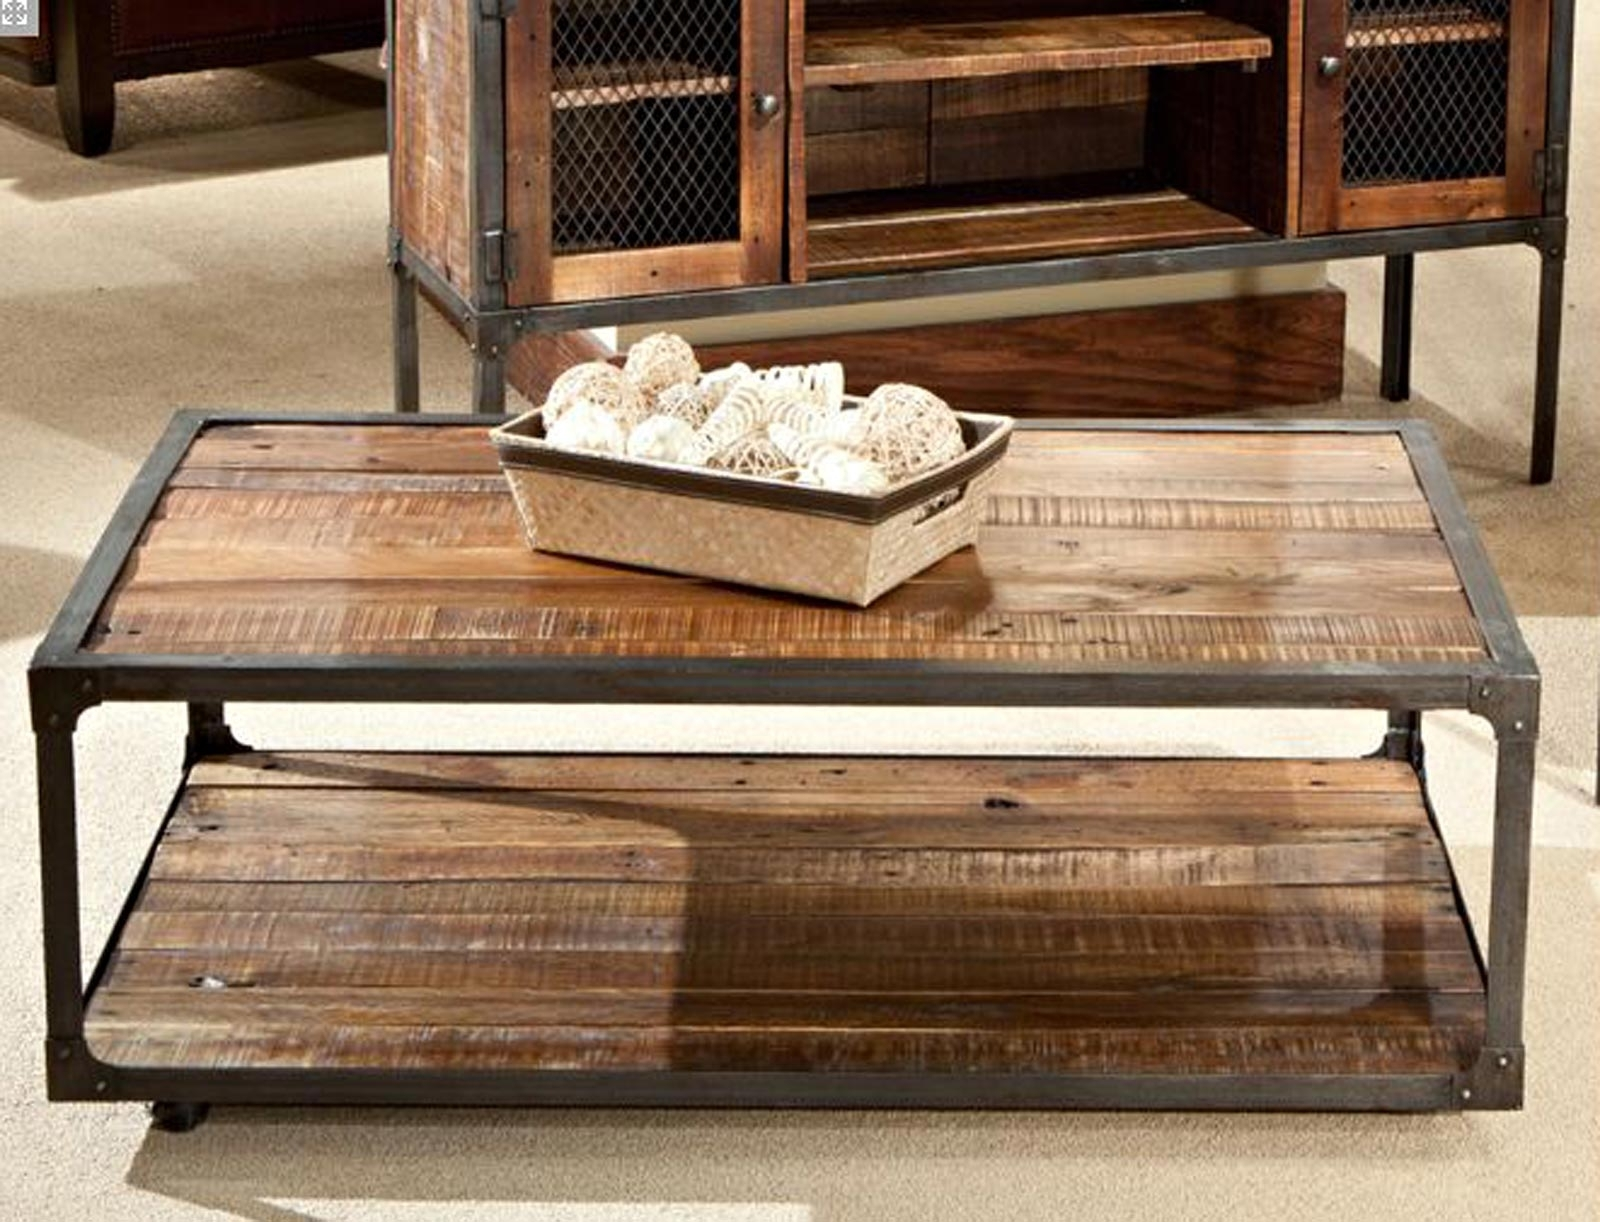 Wood Metal Coffee Table Elegant Material – Thelightlaughed With Regard To Recent Iron Wood Coffee Tables With Wheels (View 2 of 20)